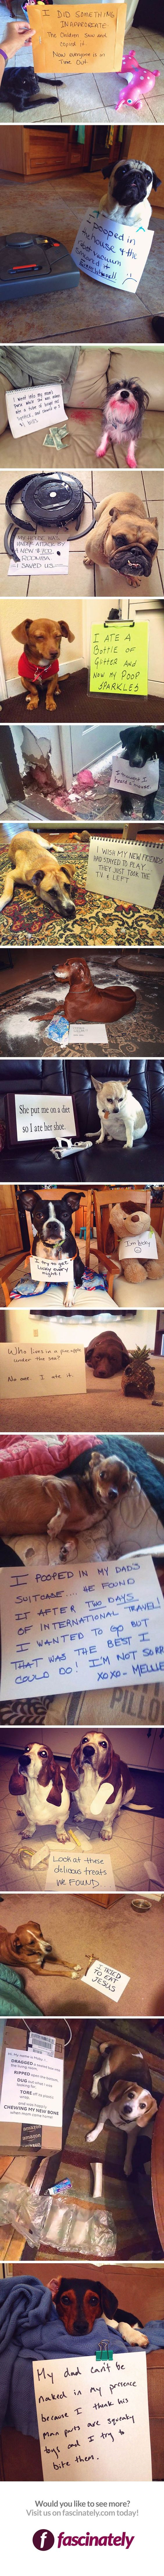 Meet the Naughtiest Dogs of 2014 – these cracked me up! It could partially be my lack of sleep right now but please enjoy (sorry for the few inappropriate ones)